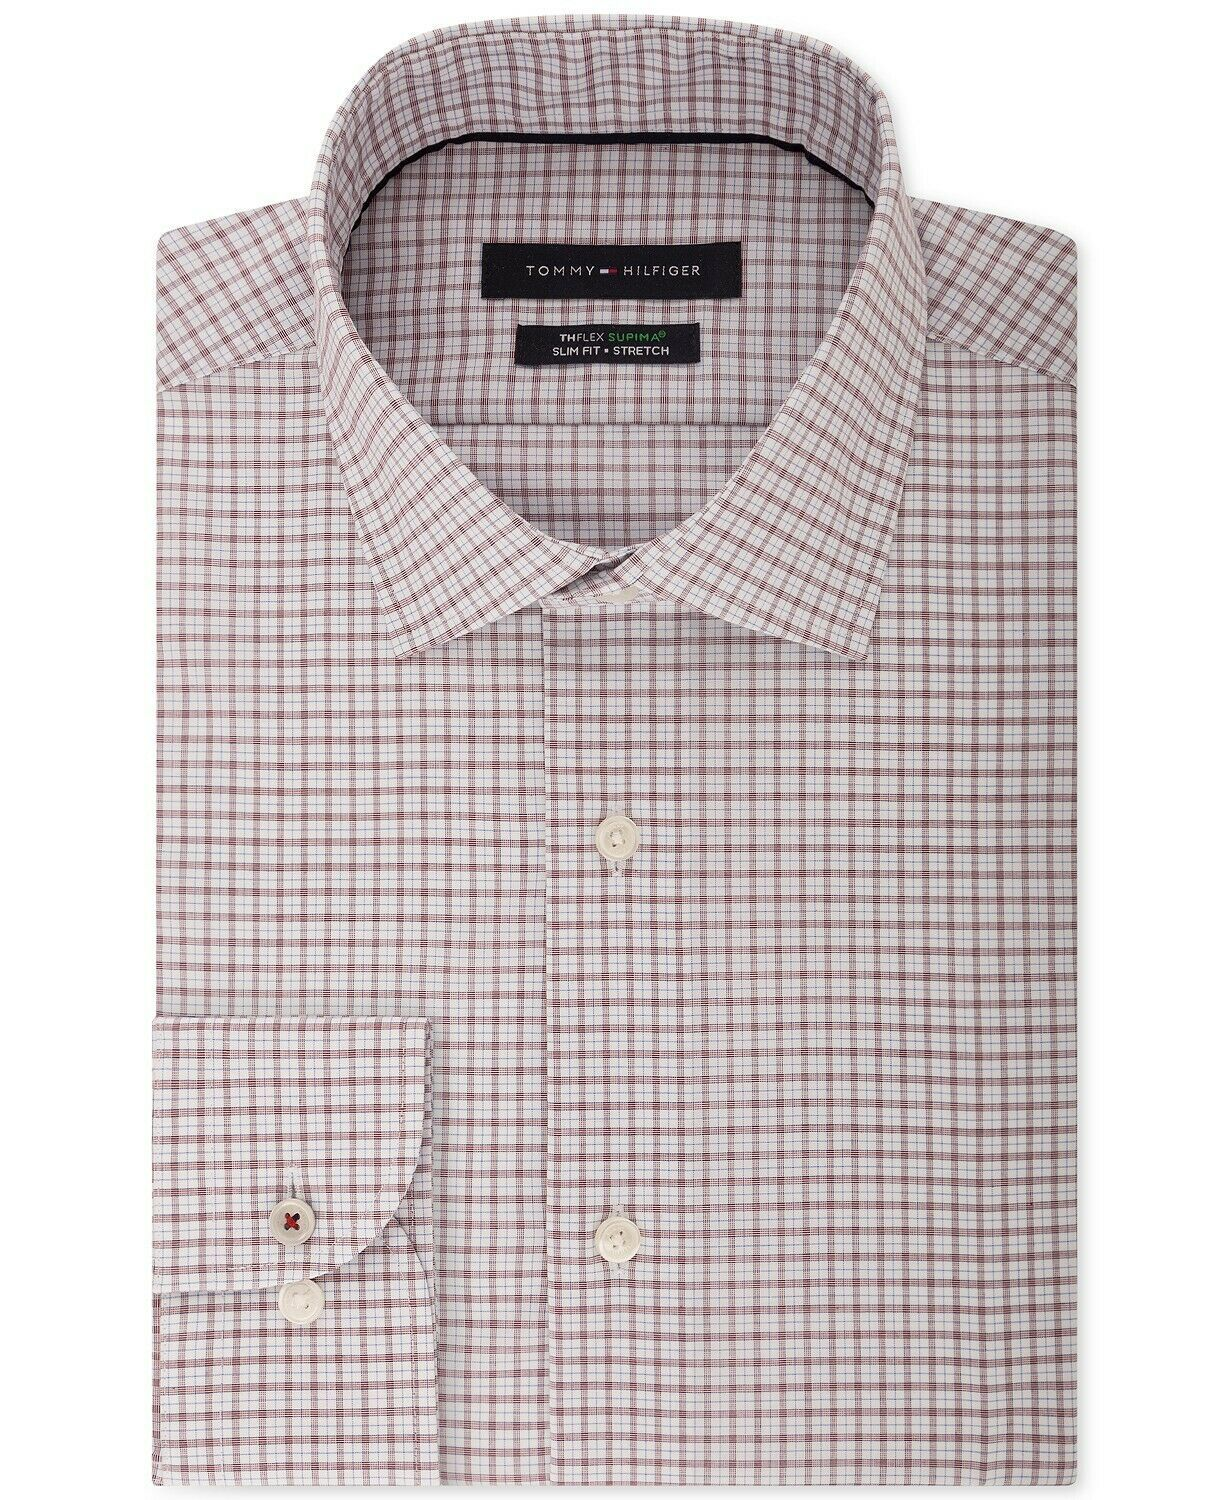 Tommy Hilfiger Men's Slim-Fit Th Flex Performance Stretch Non-Iron Red Check Dress Shirt